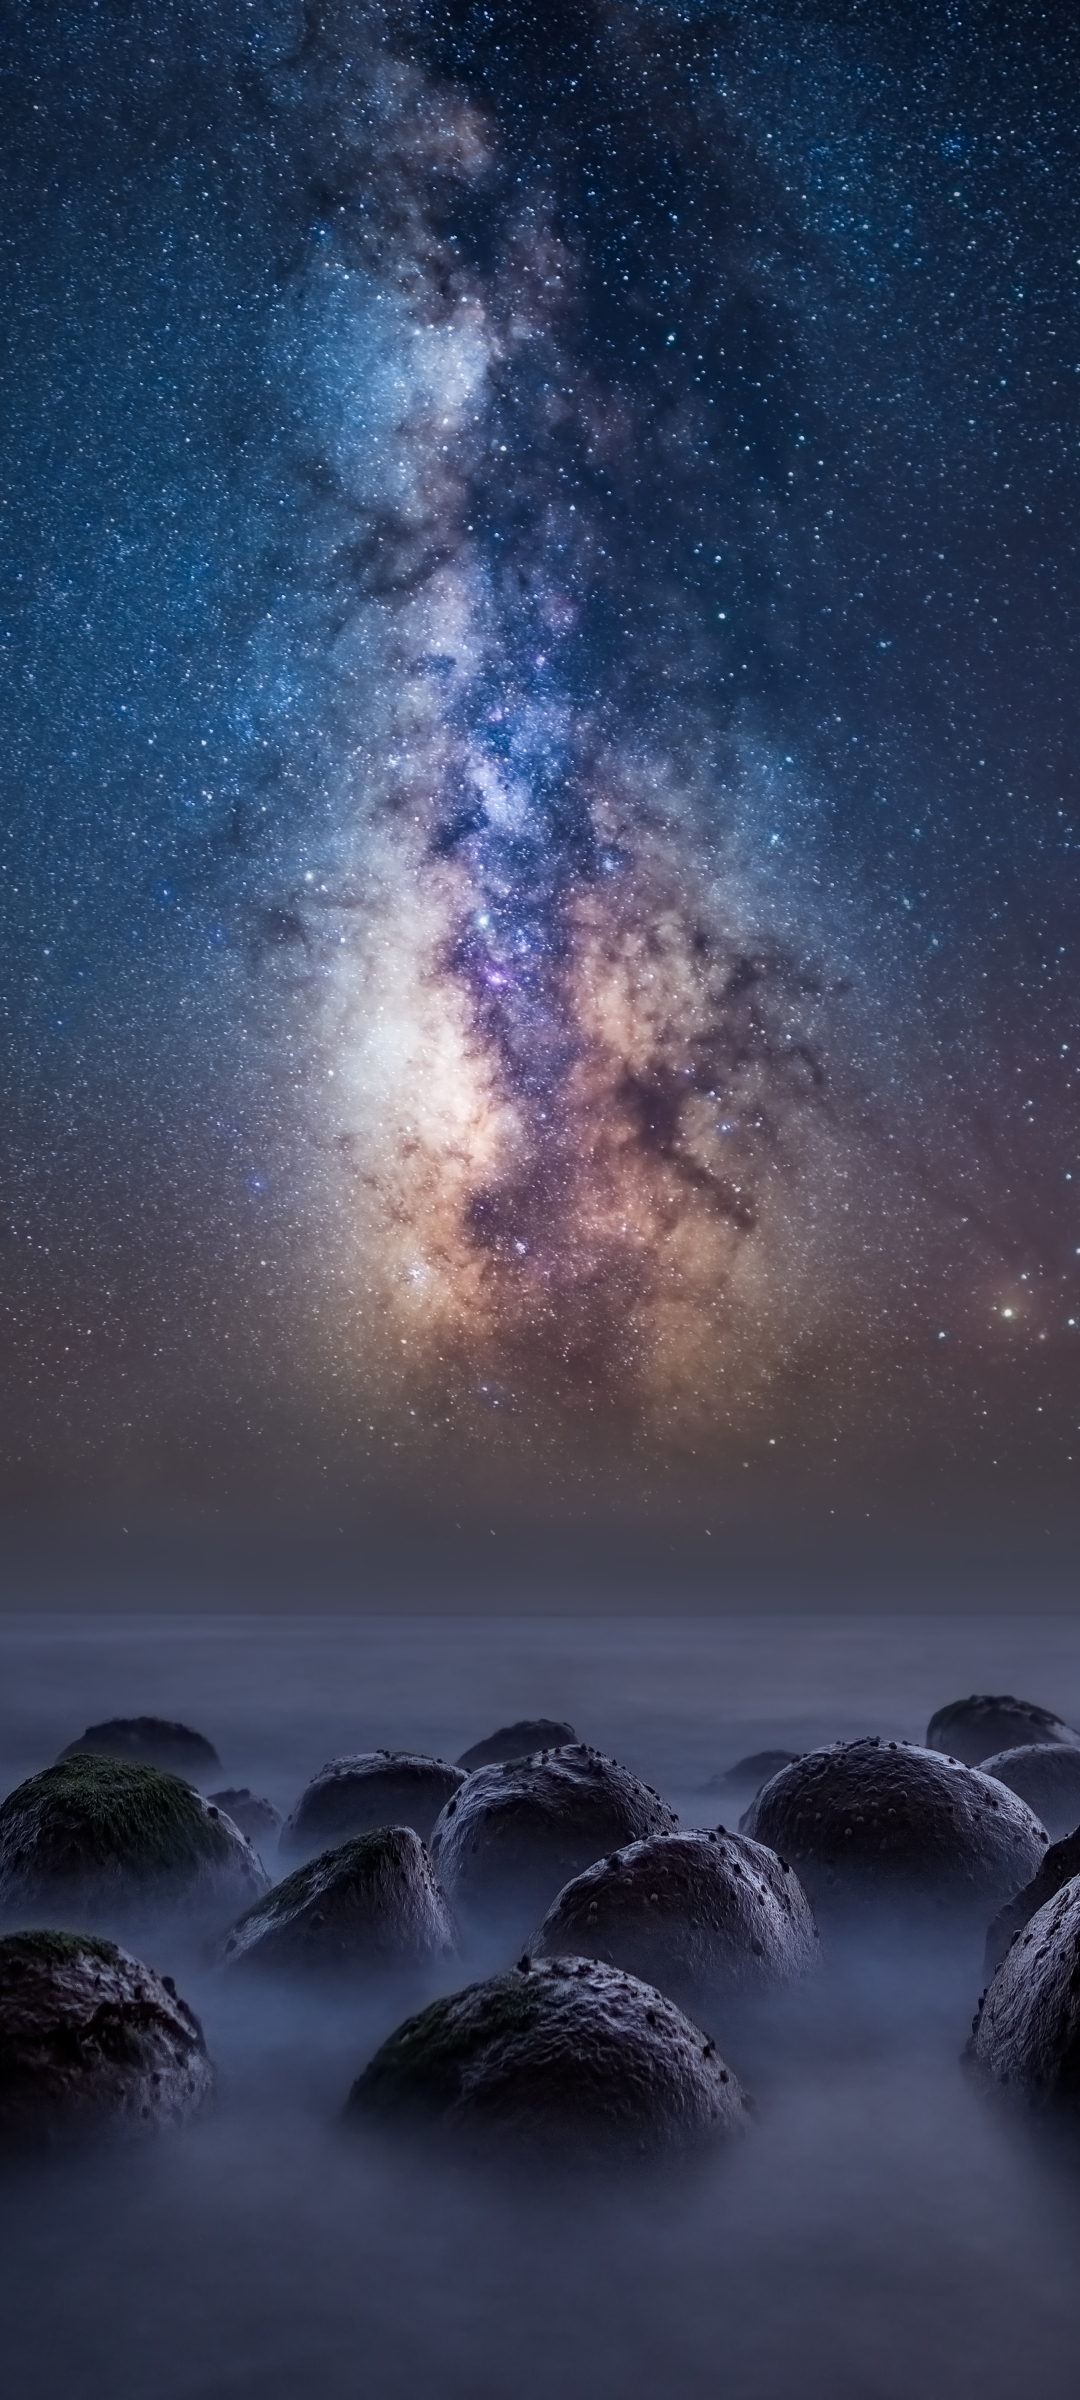 1080x2400 Milky Way Over the Bowling Ball Beach 1080x2400 1080x2400